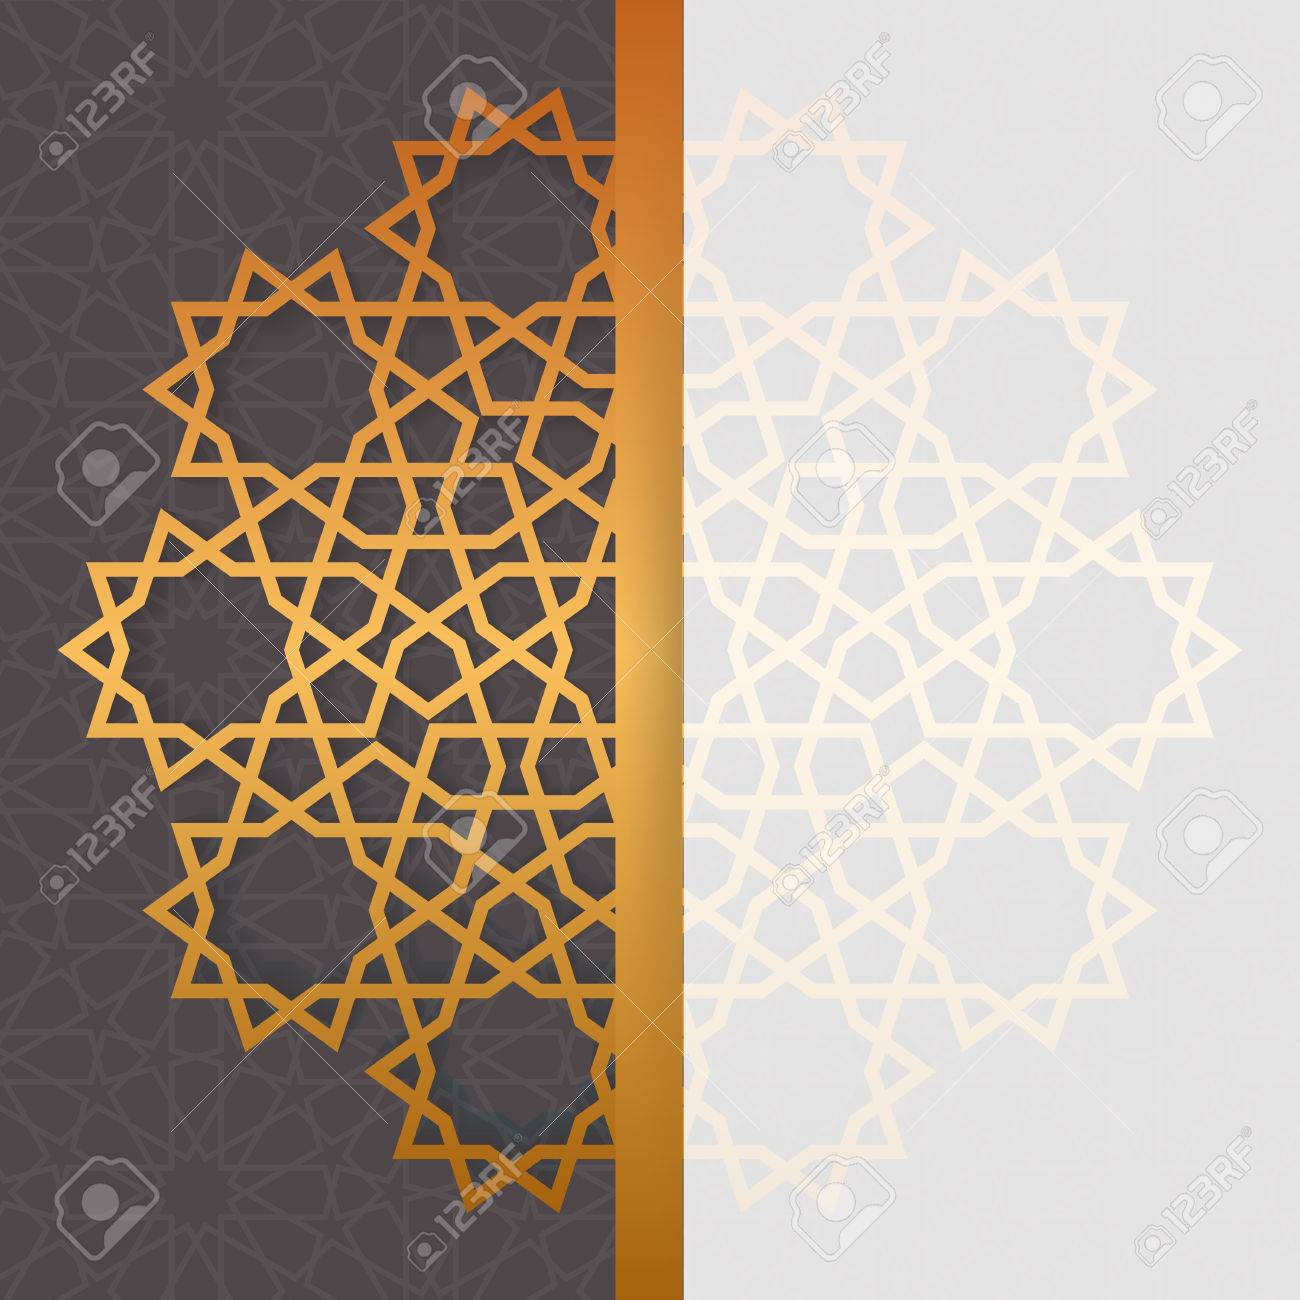 Geometric islamic pattern invitation eid al adha greeting card geometric islamic pattern invitation eid al adha greeting card template in arabian style stock vector stopboris Images